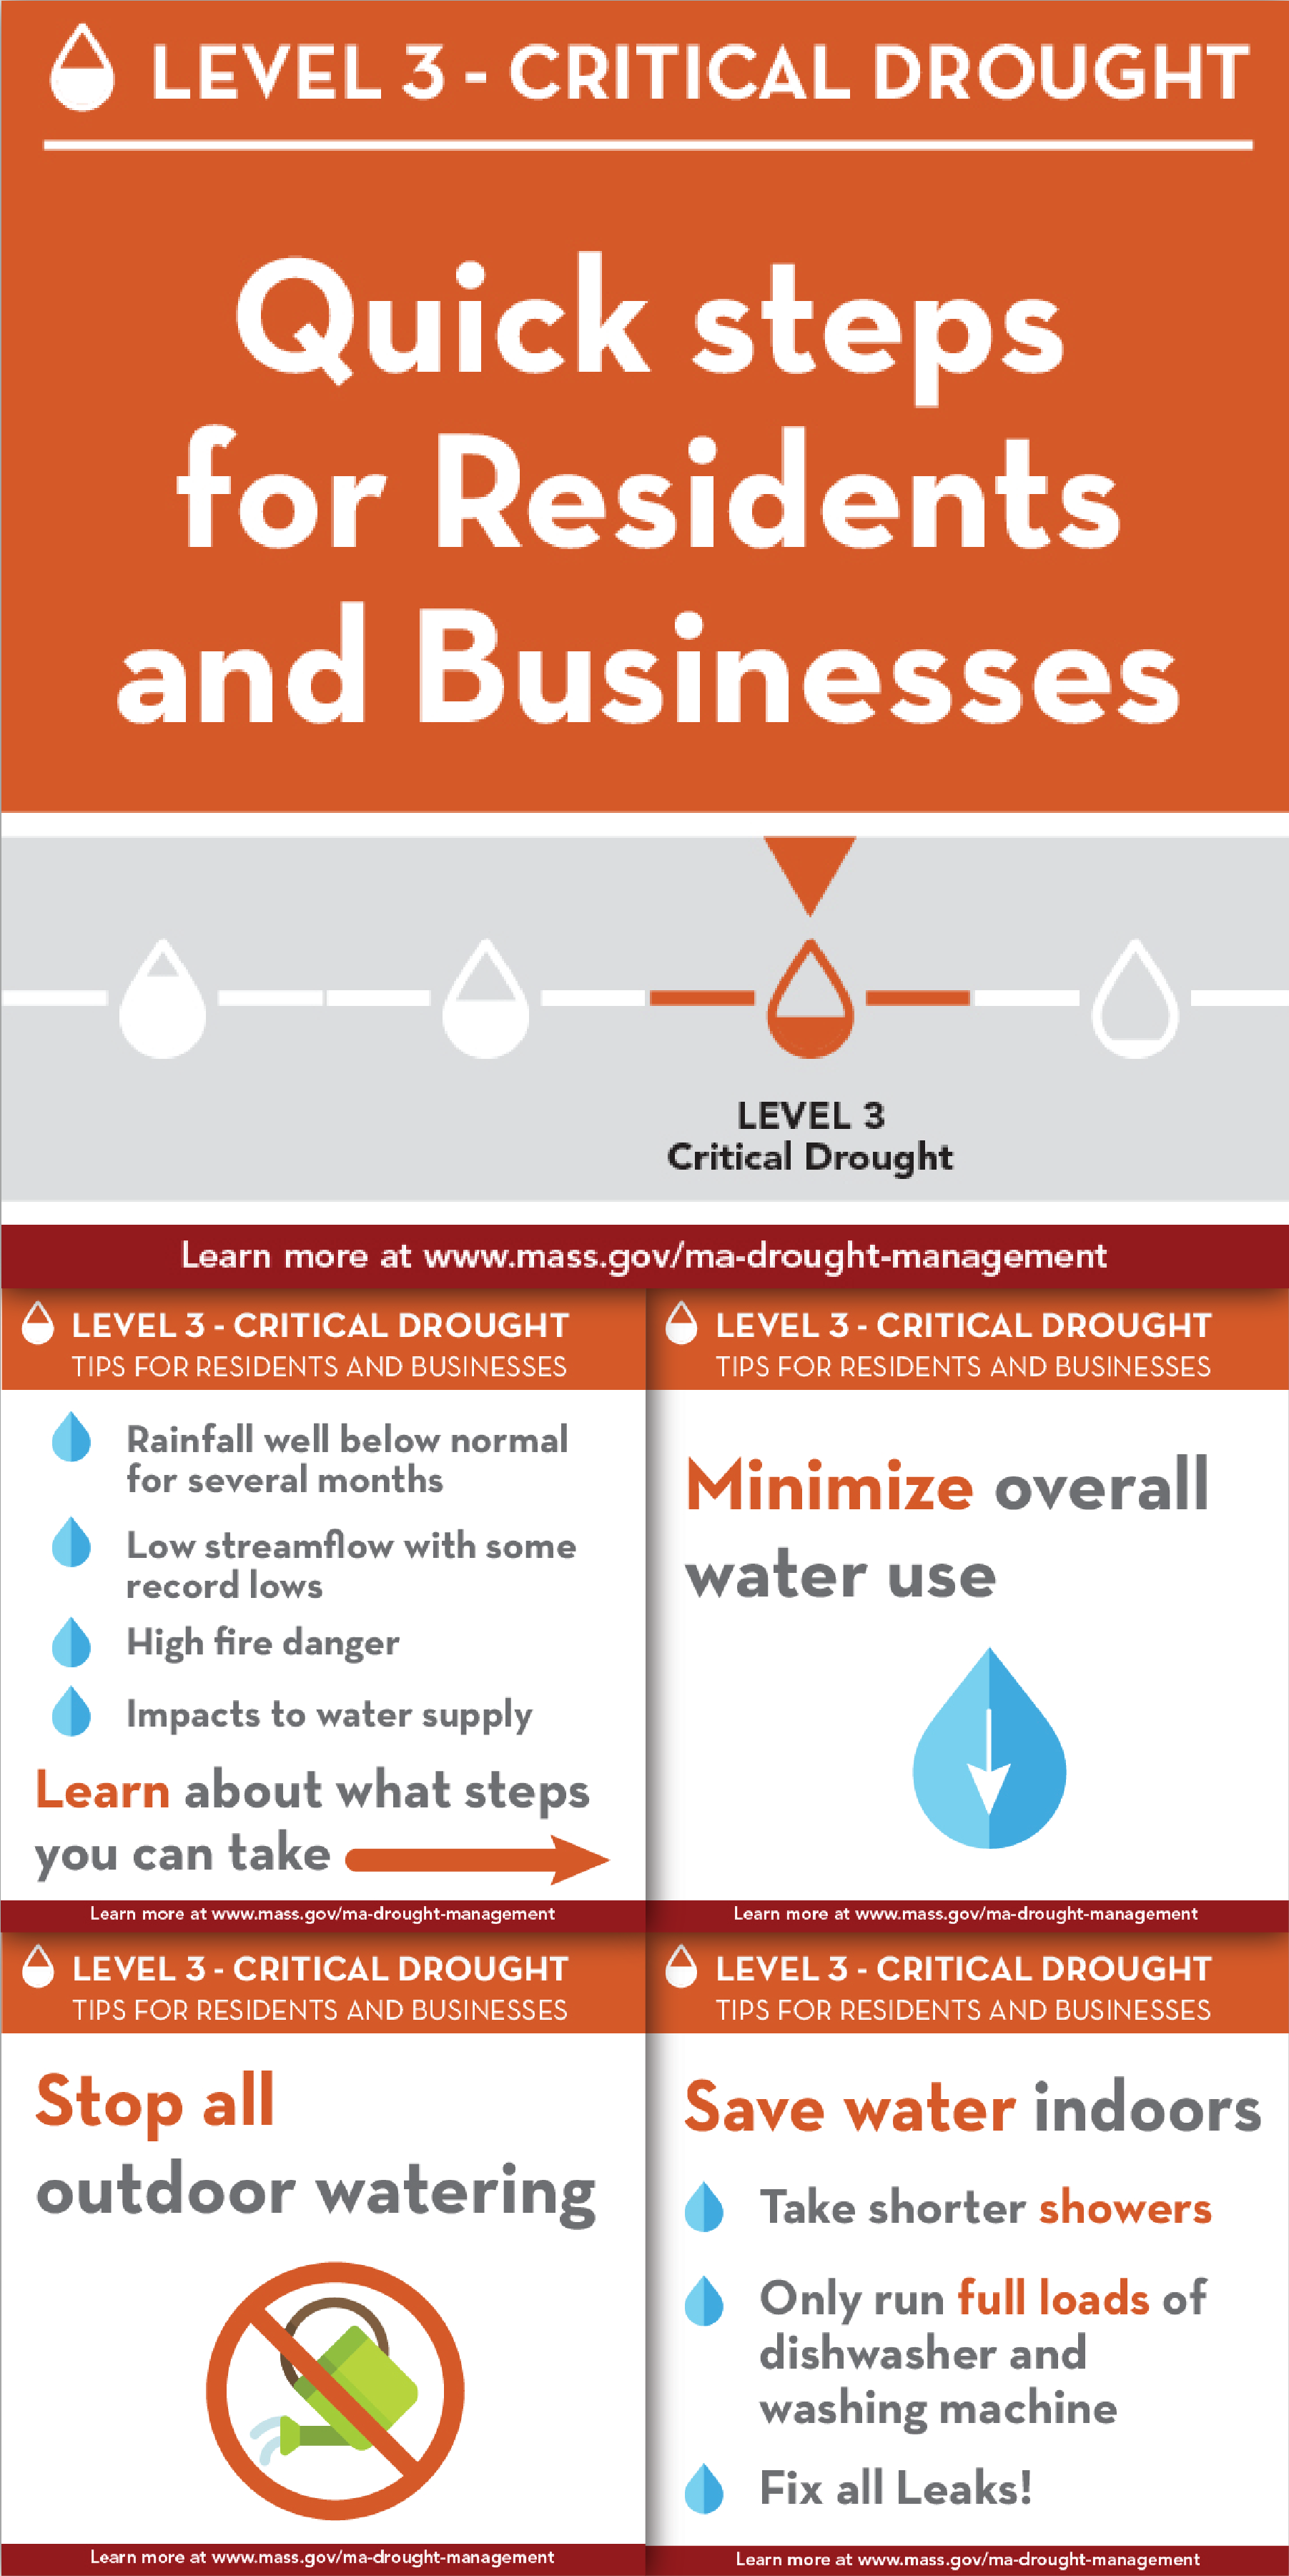 Quick steps for residents and businesses to take during drought